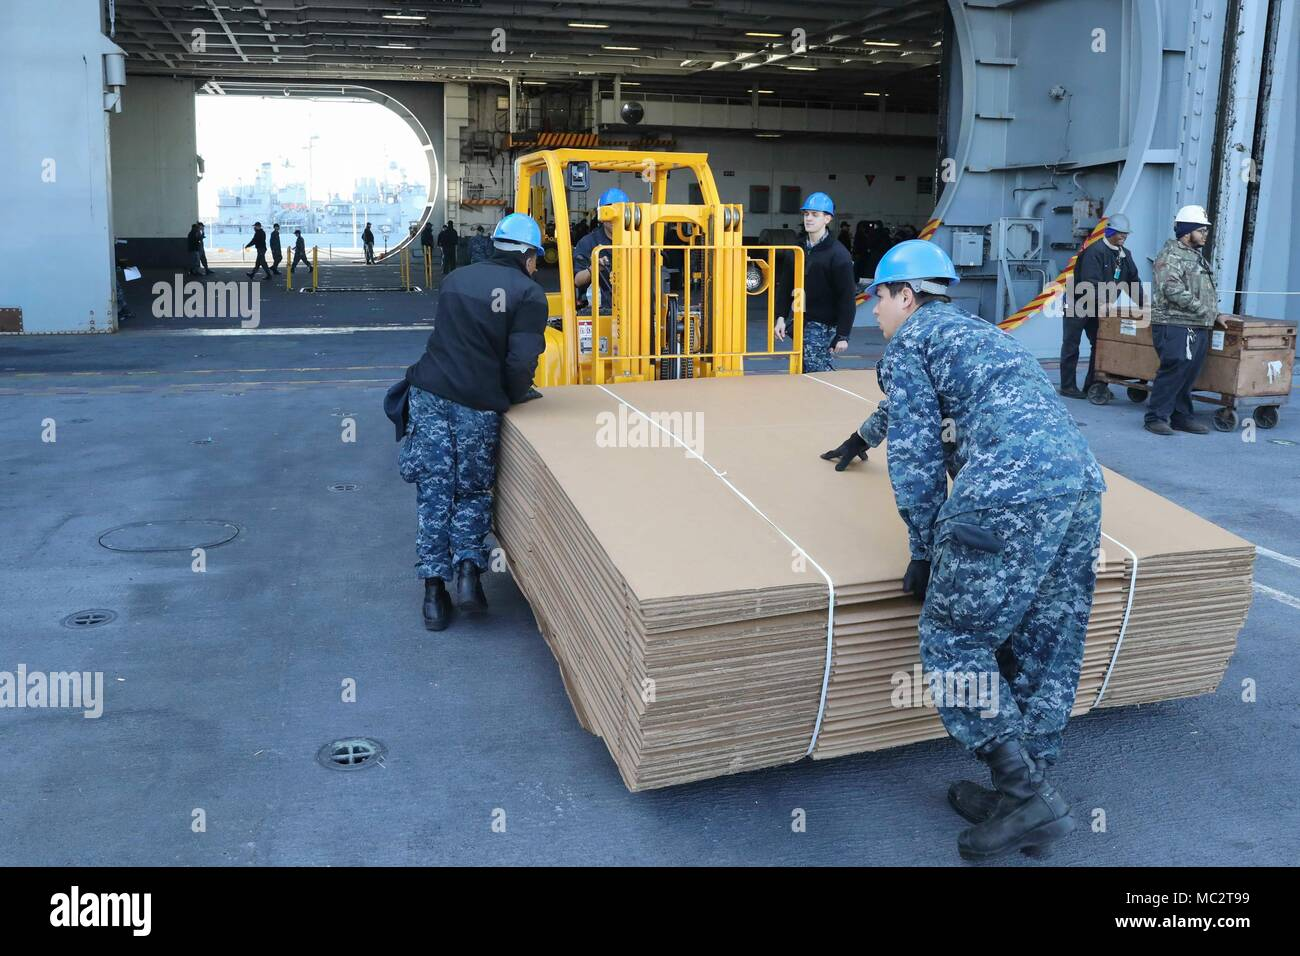 180124-N-PW716-0018 NORFOLK (Jan. 24, 2018) Sailors assigned to the Nimitz-class aircraft carrier USS Abraham Lincoln (CVN 72) move supplies into the hangar bay. (U.S. Navy photo by Mass Communication Specialist 3rd Class Clint Davis/Released) - Stock Image